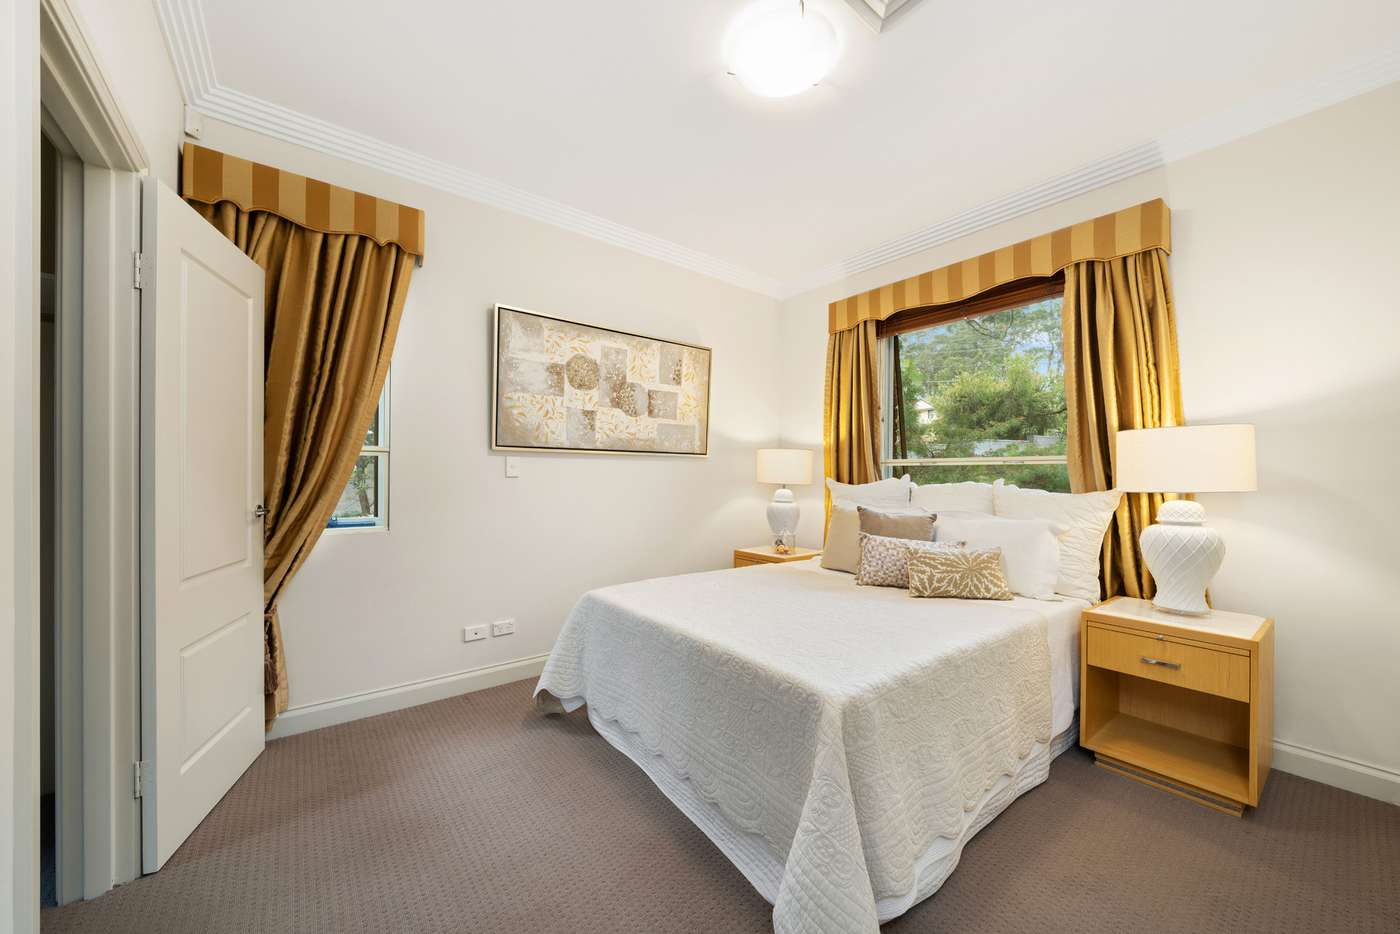 Sixth view of Homely apartment listing, 15/125-127 Mona Vale Road, St Ives NSW 2075